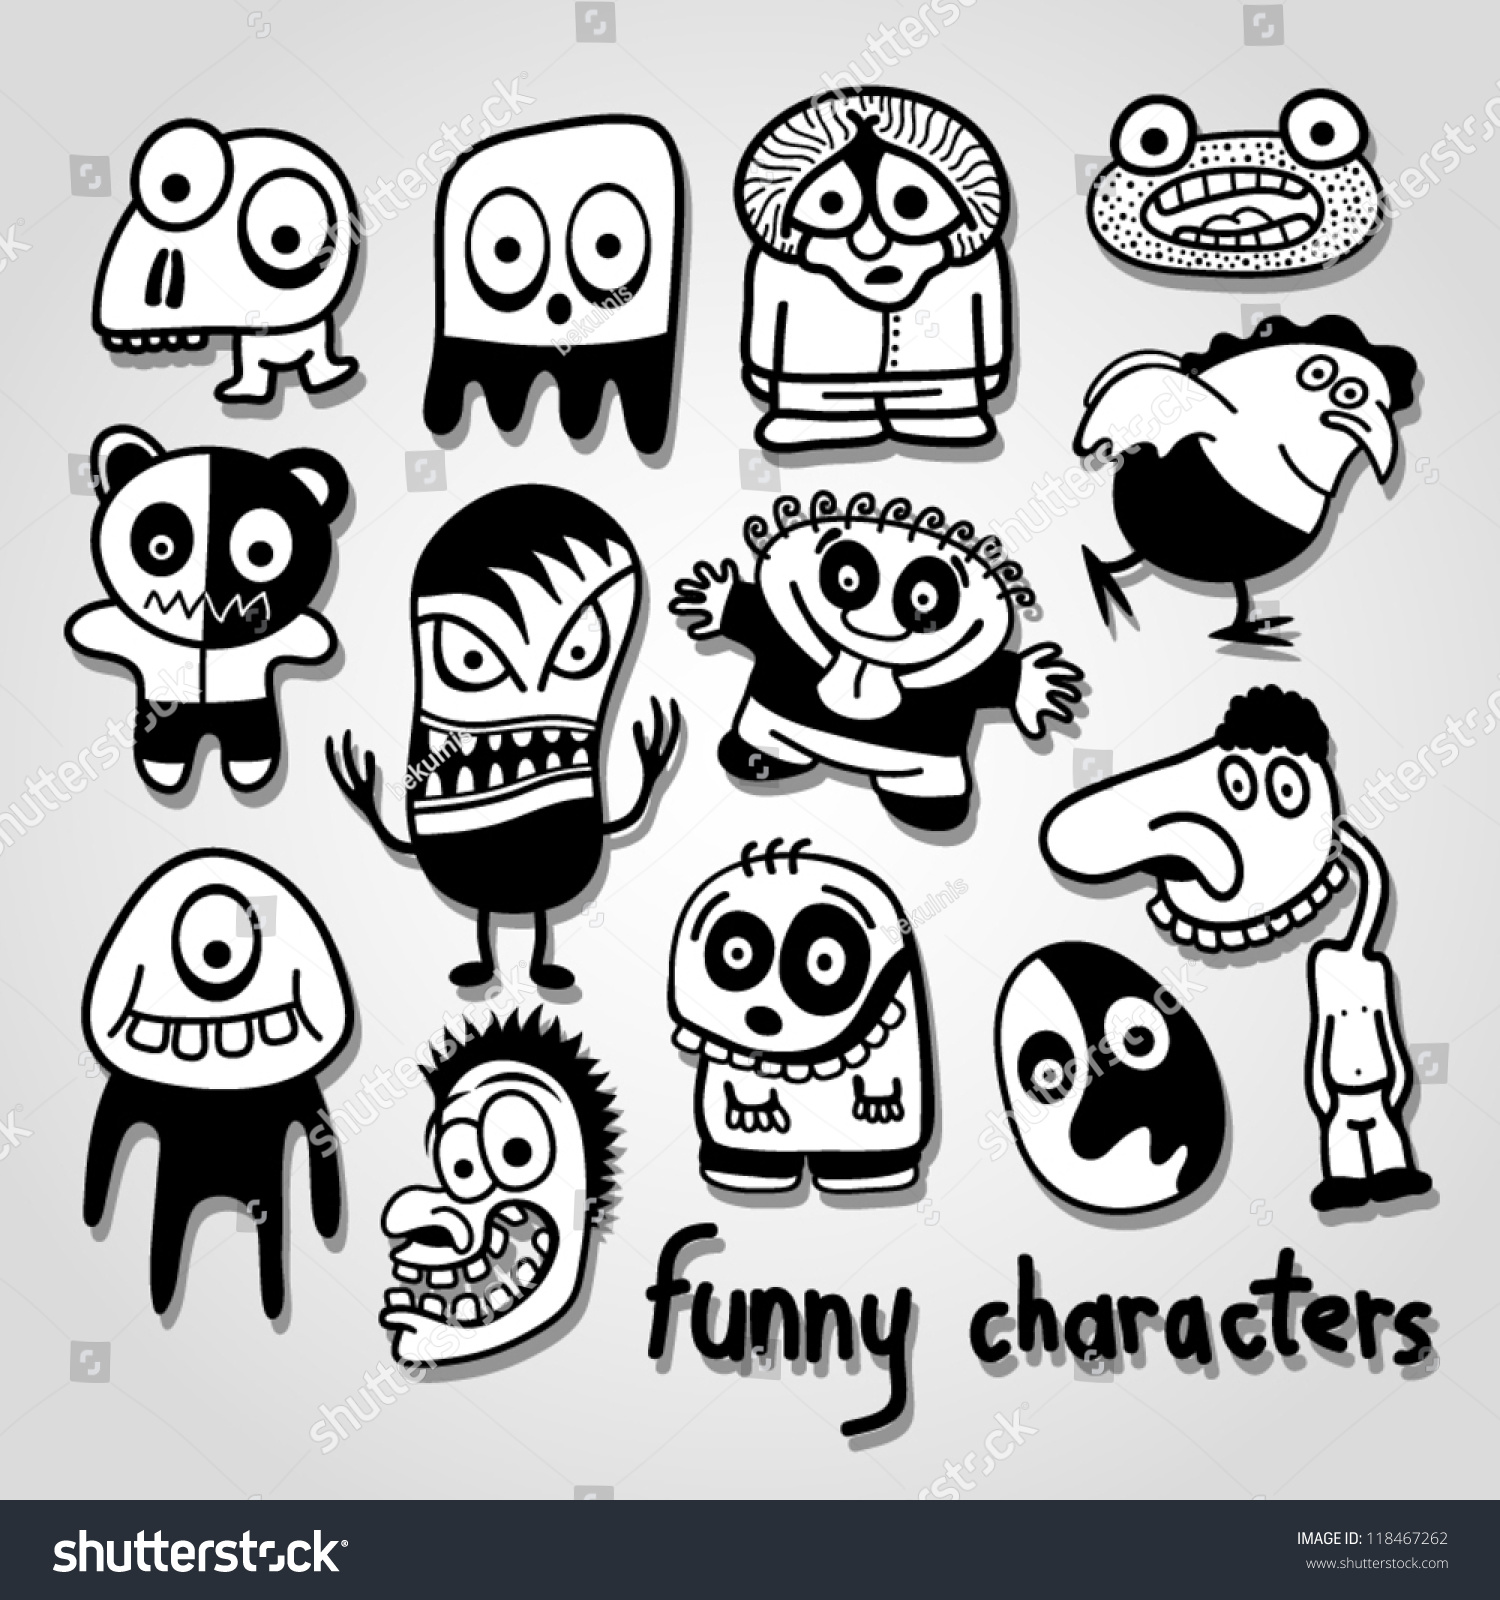 Cartoon Characters That Start With E : E book and paper book funny characters stock vector art